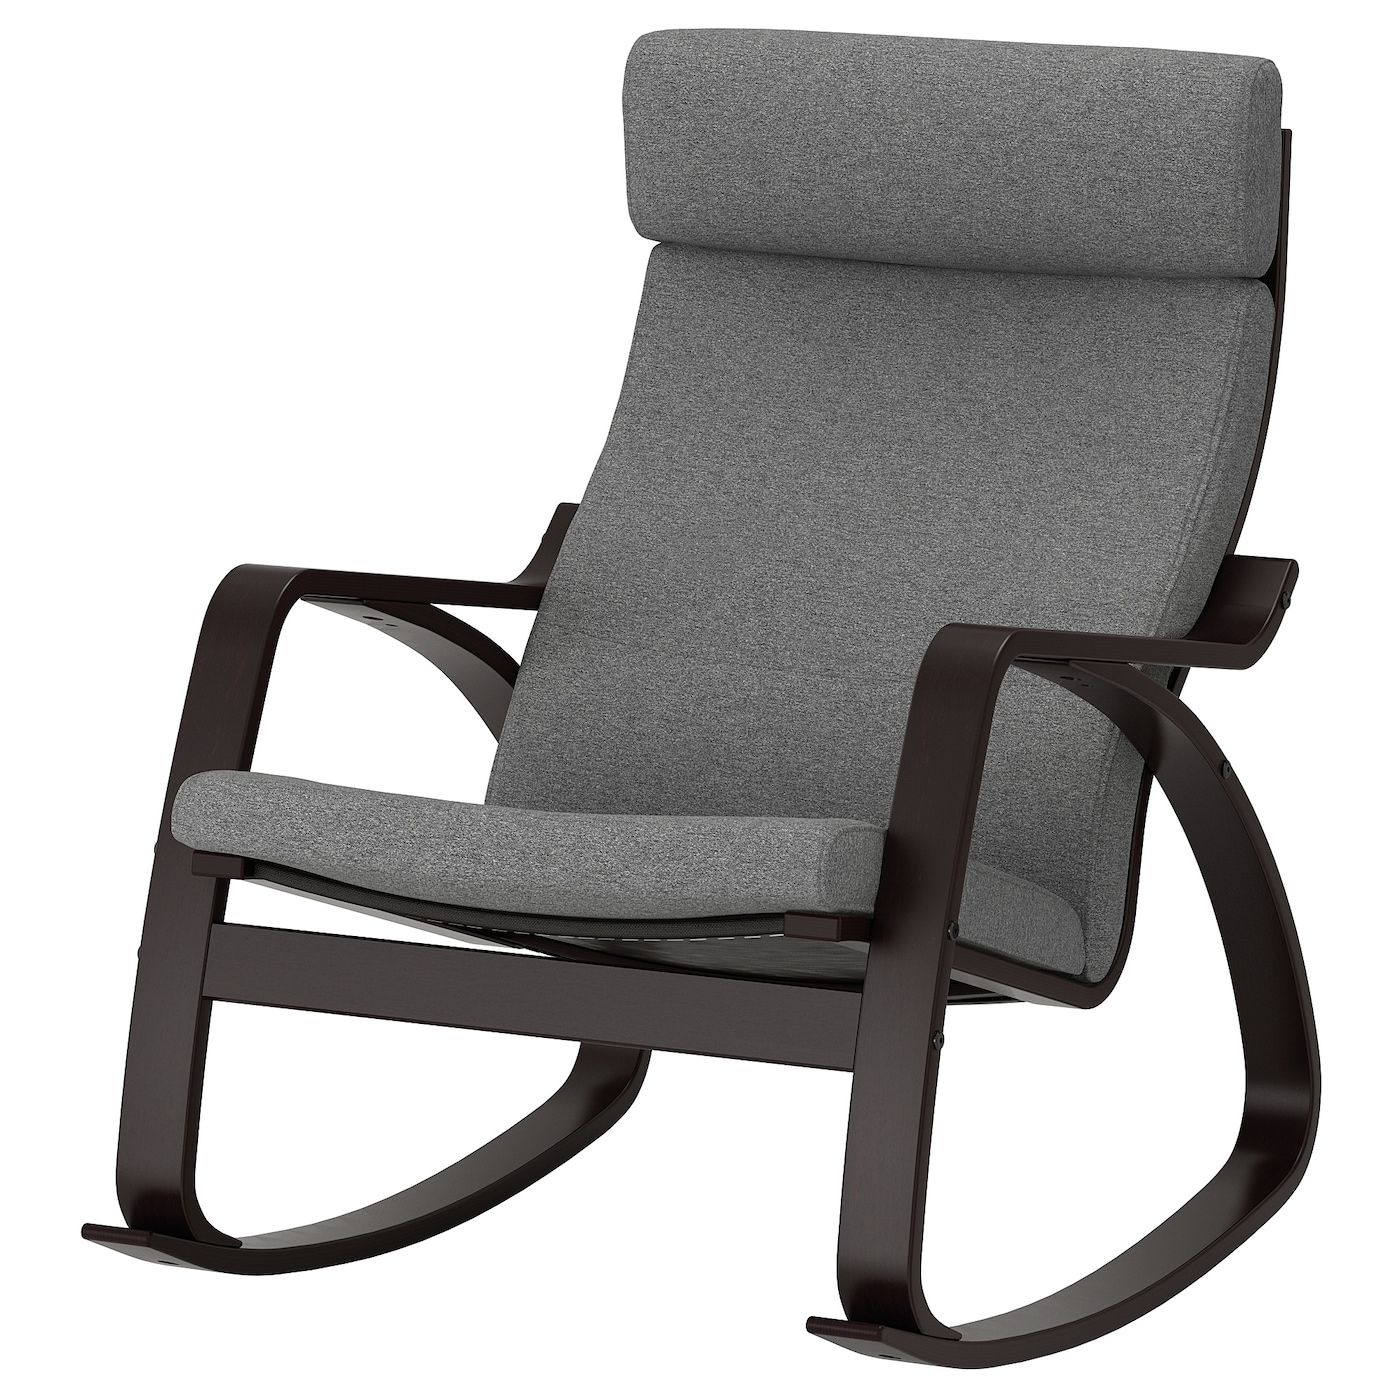 POÄNG Rocking chair black brown, Lysed grey